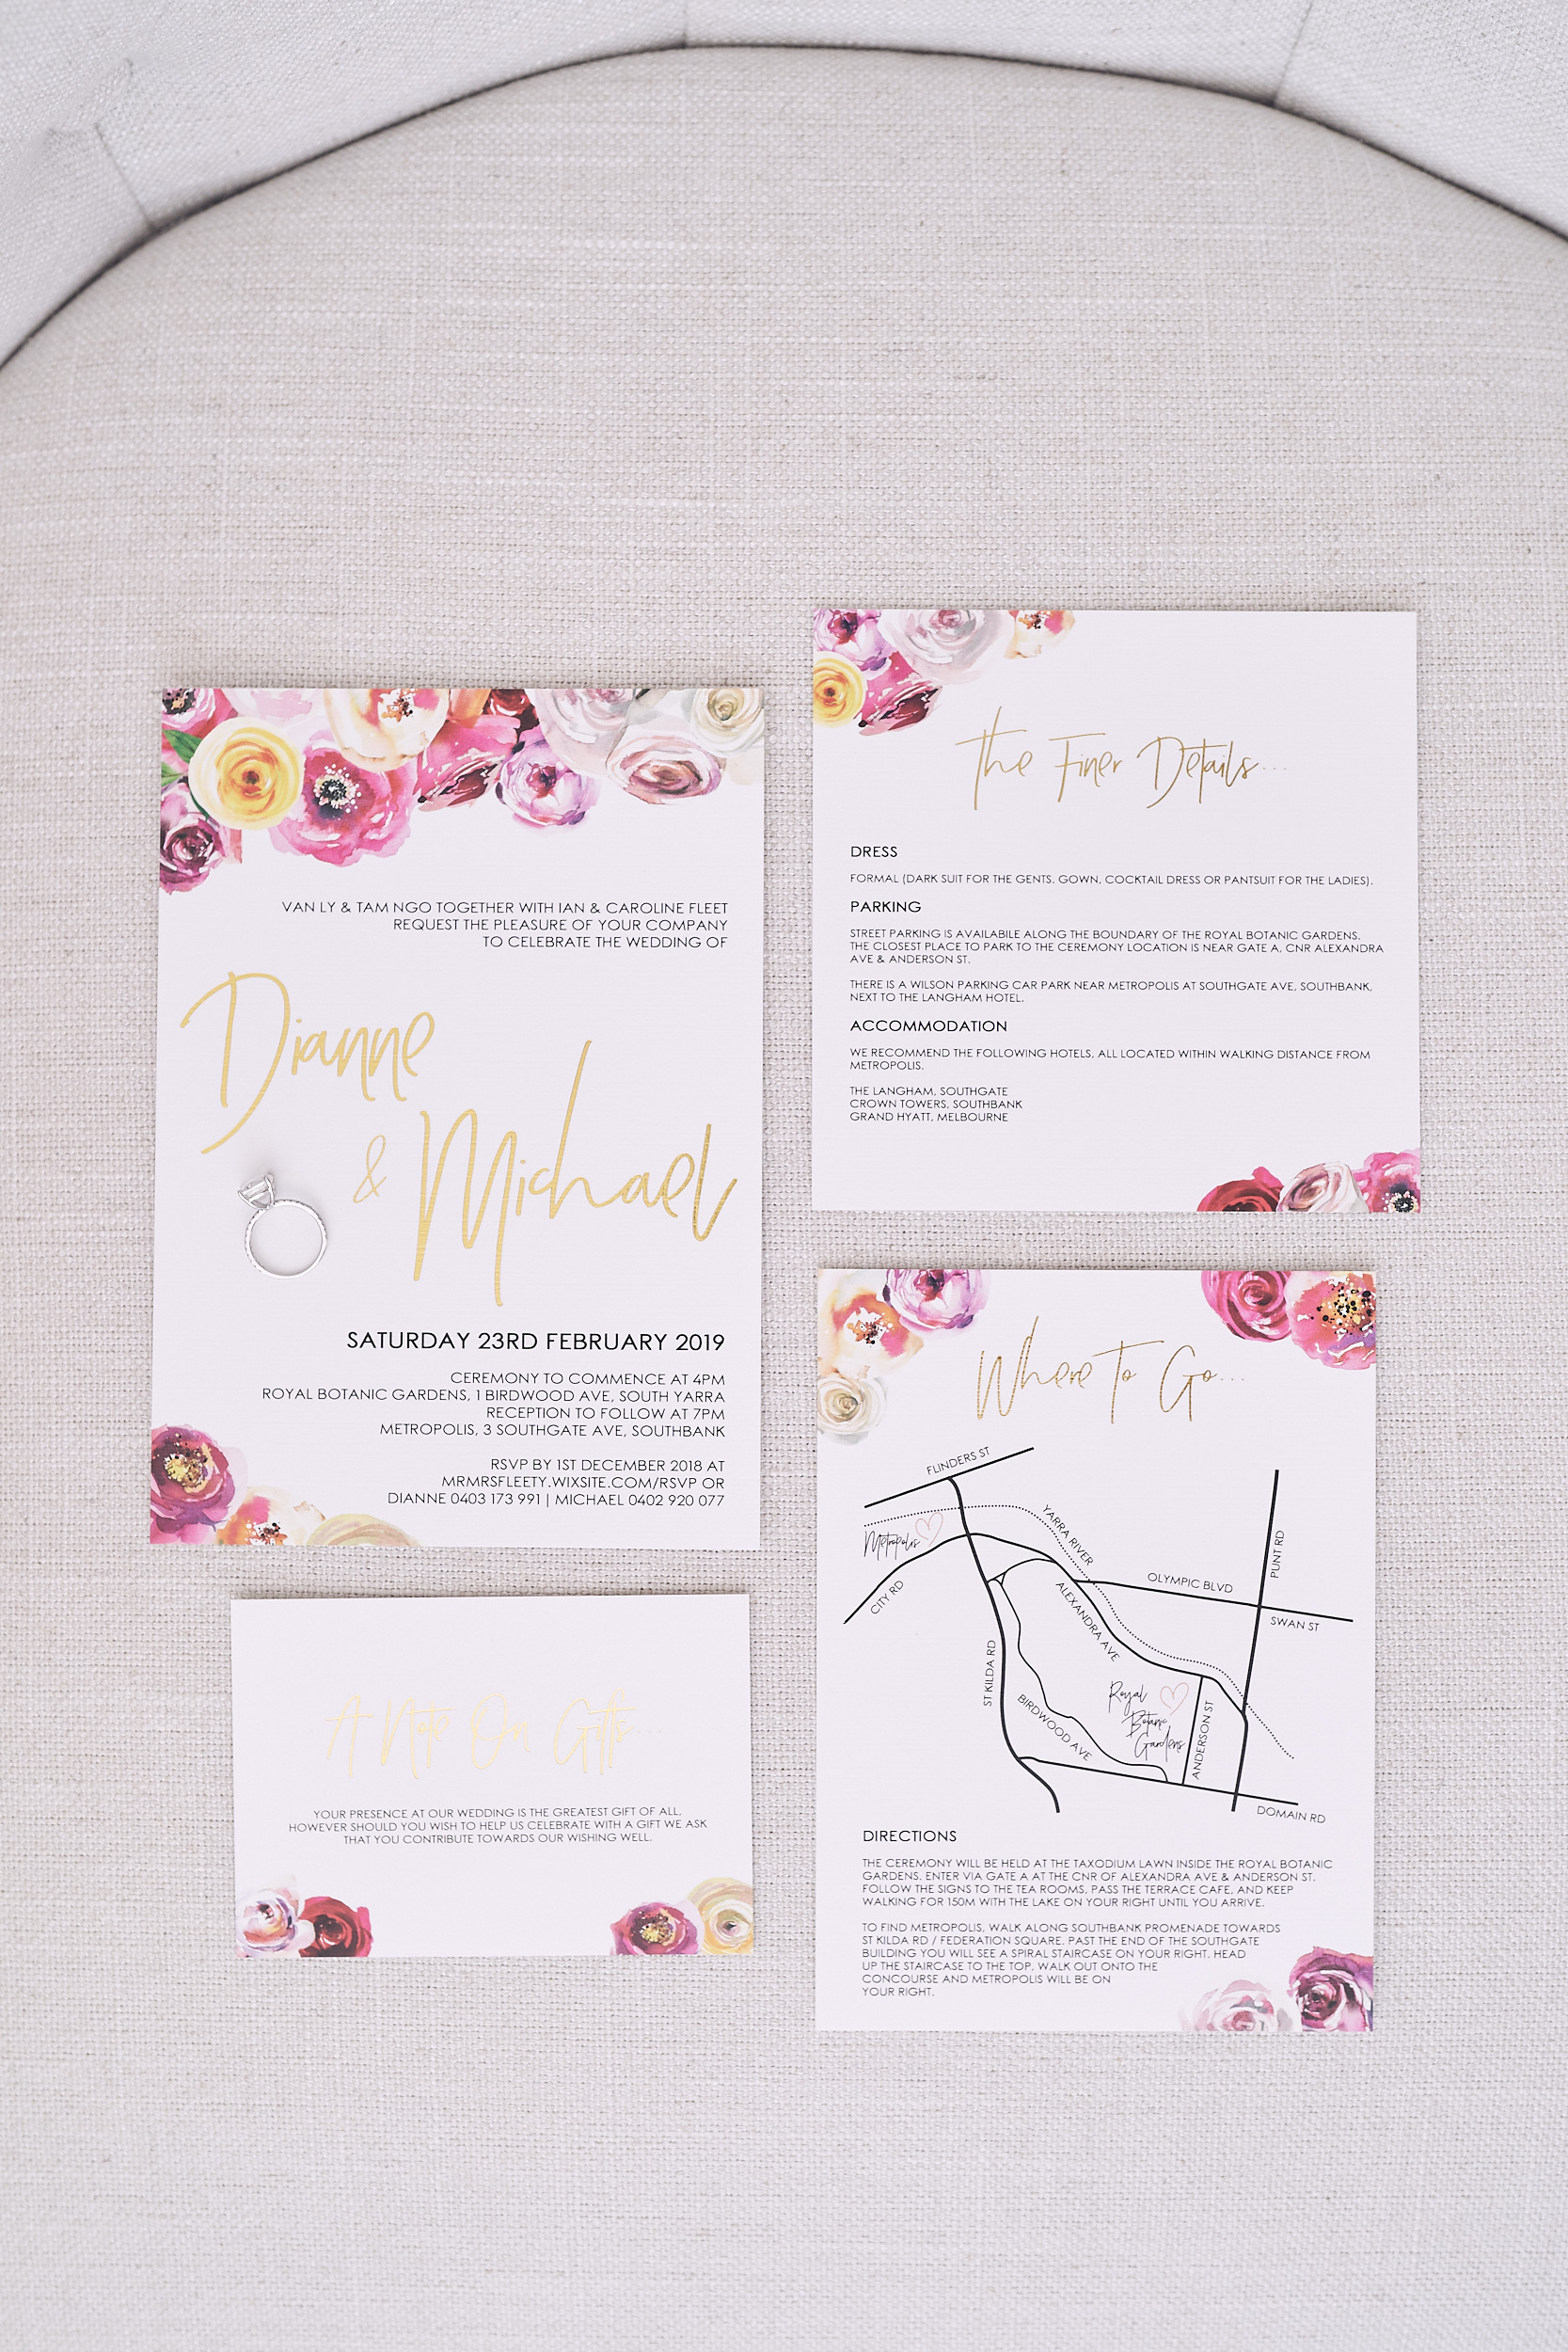 Botanical gardens wedding. Invitation. Lost In Love Photography